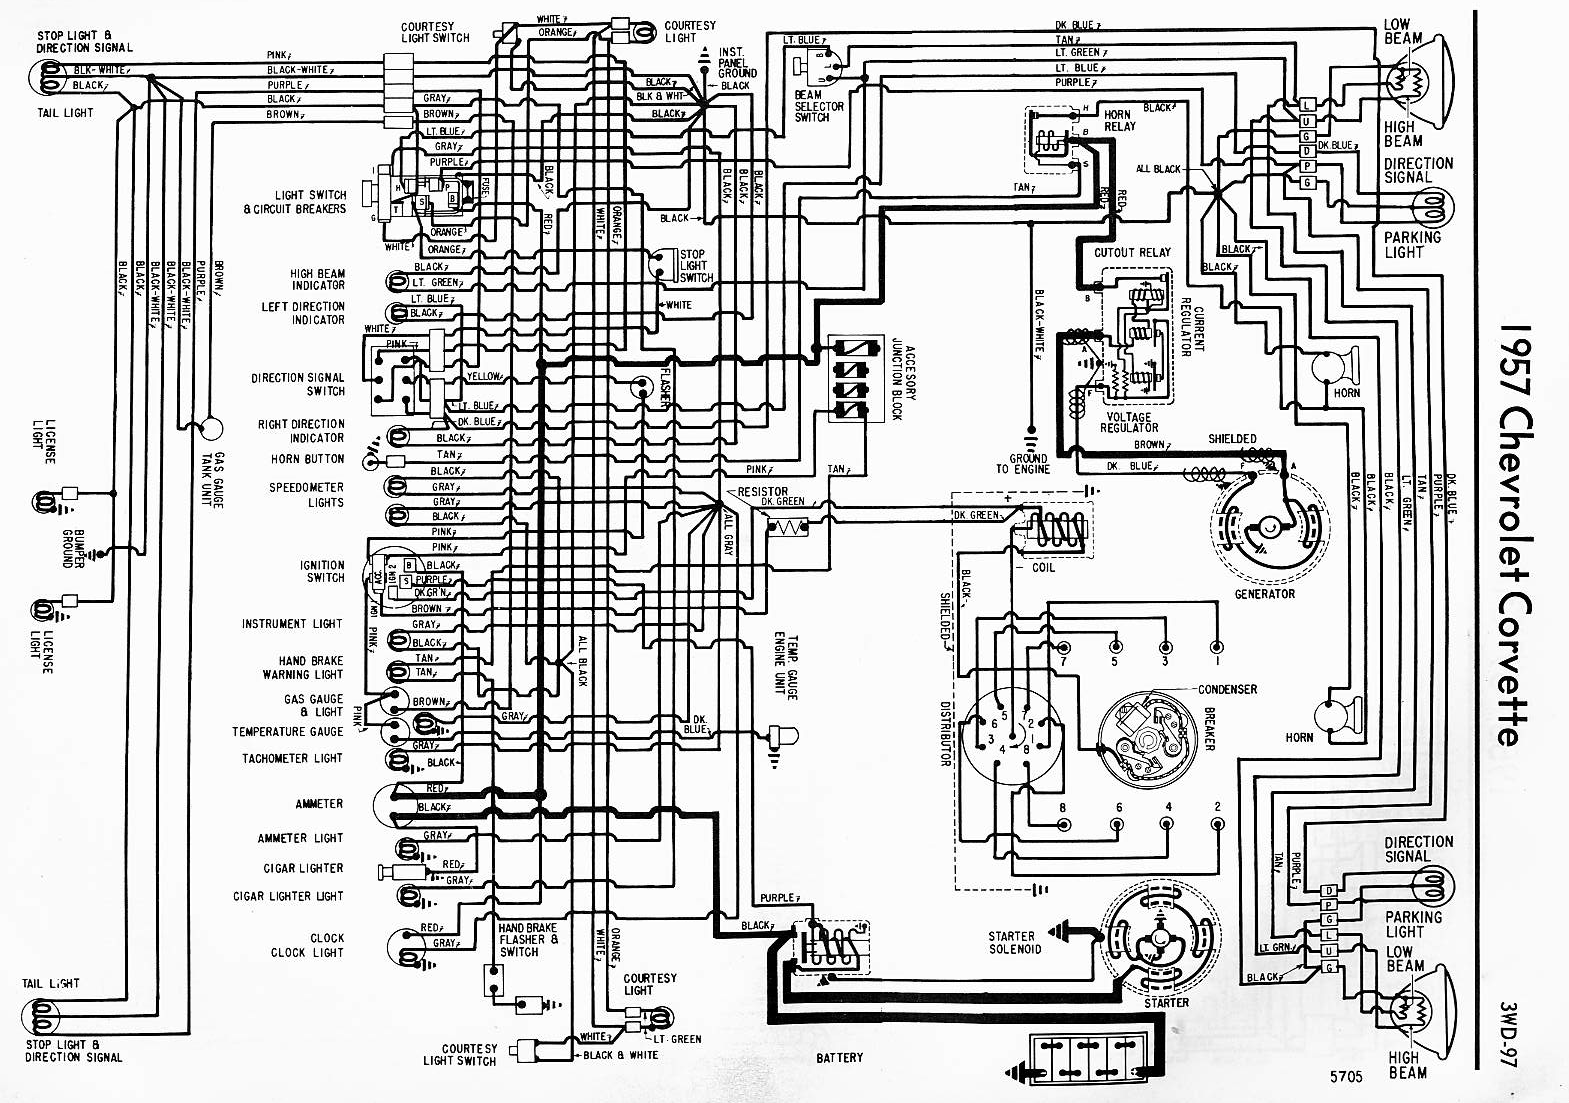 57 corvettte tracer schematic best one 1980 corvette wiring schematic wiring diagram data